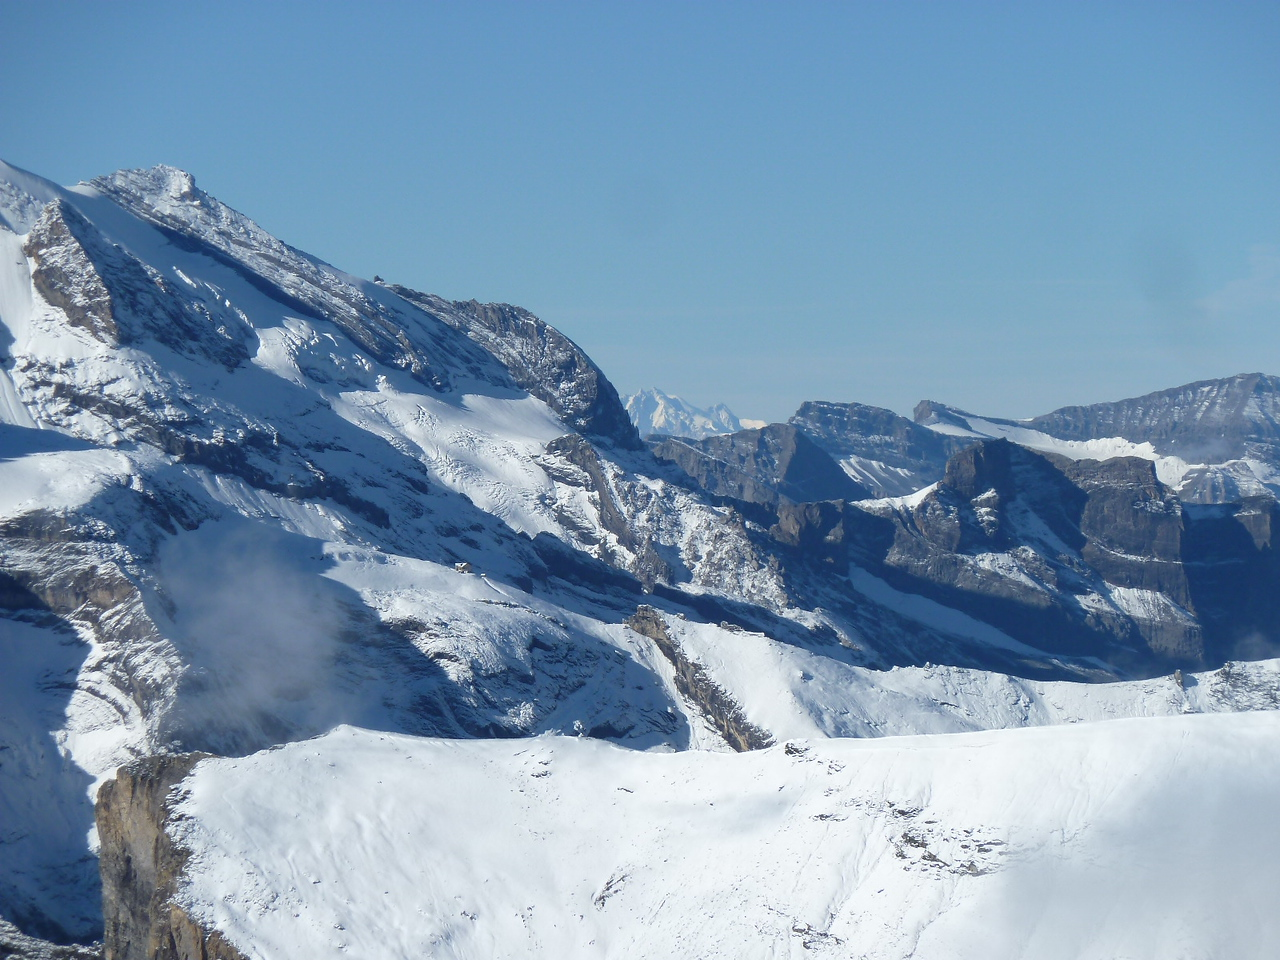 The Mont Blanc in the distance, in the middle, as seen from the Schilthorn.